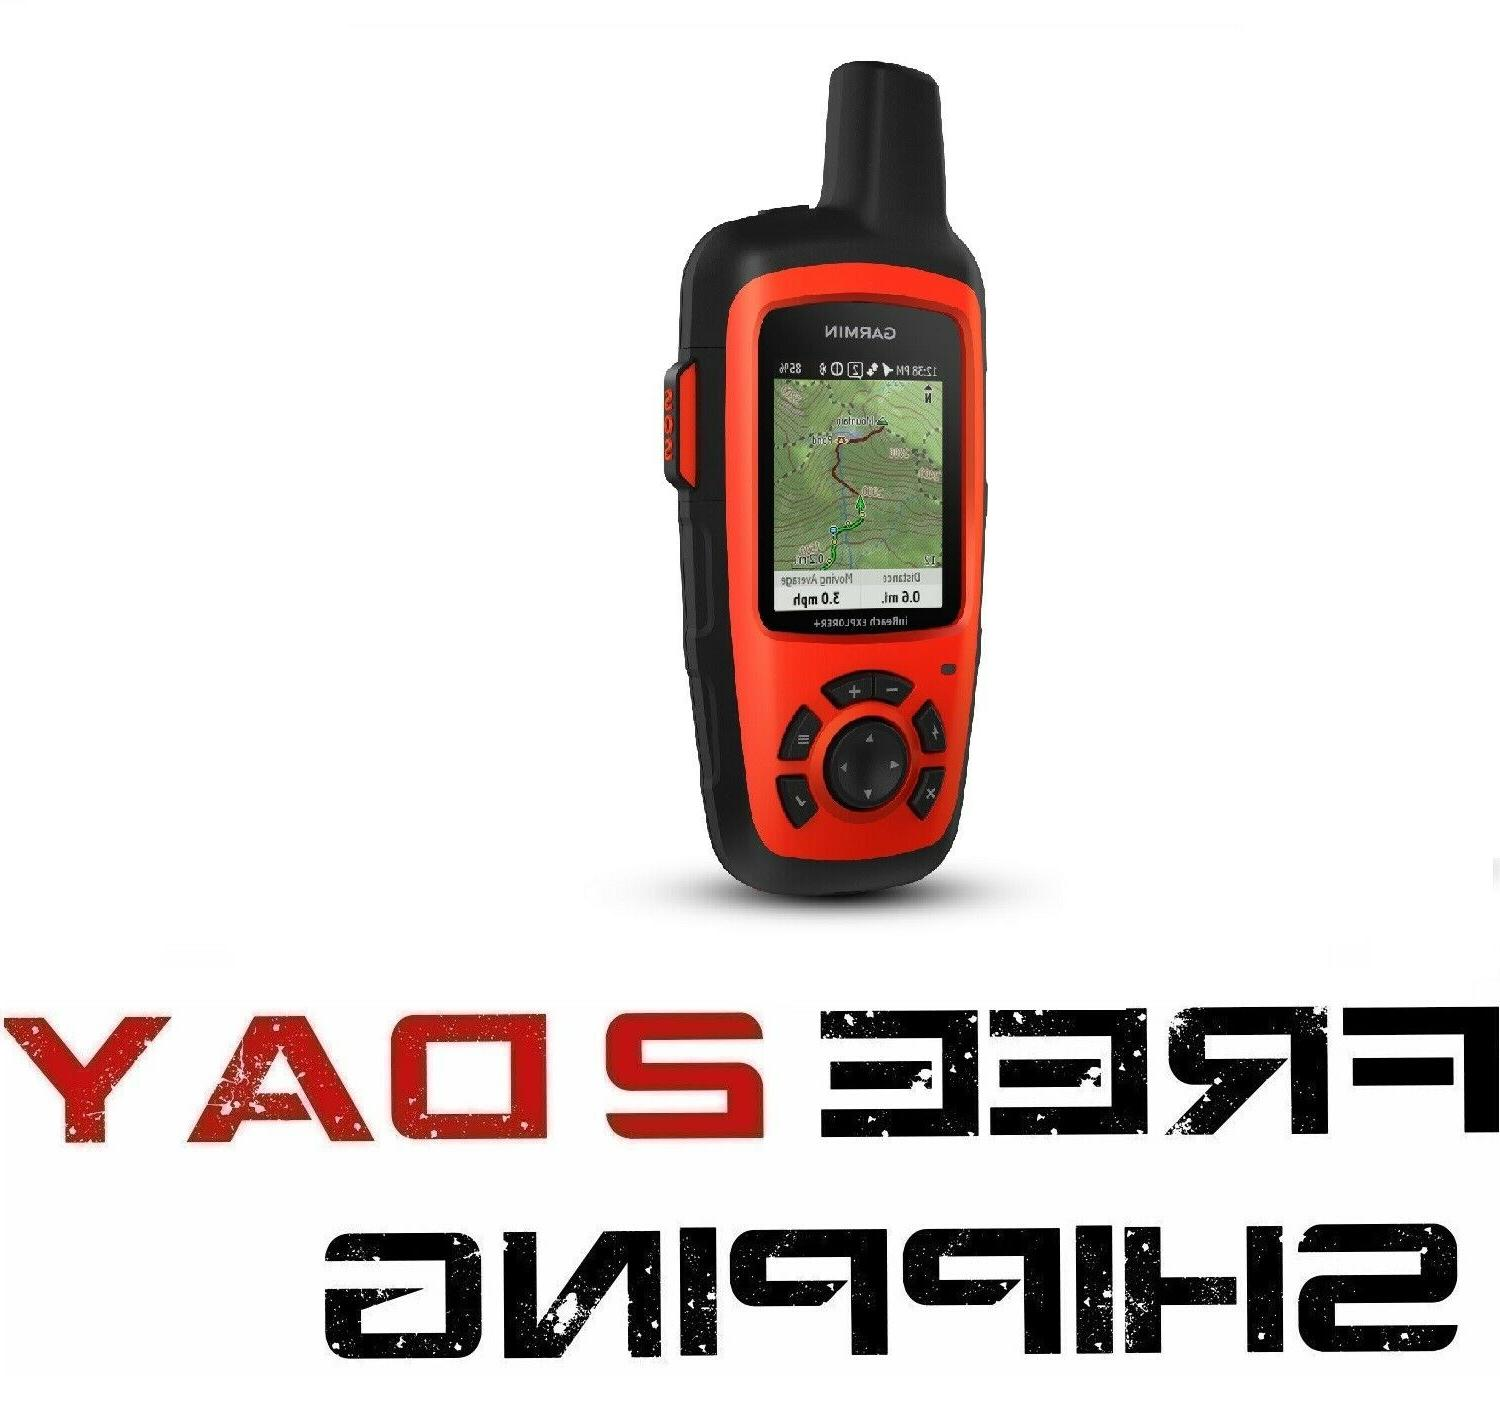 inreach explorer satellite communicators